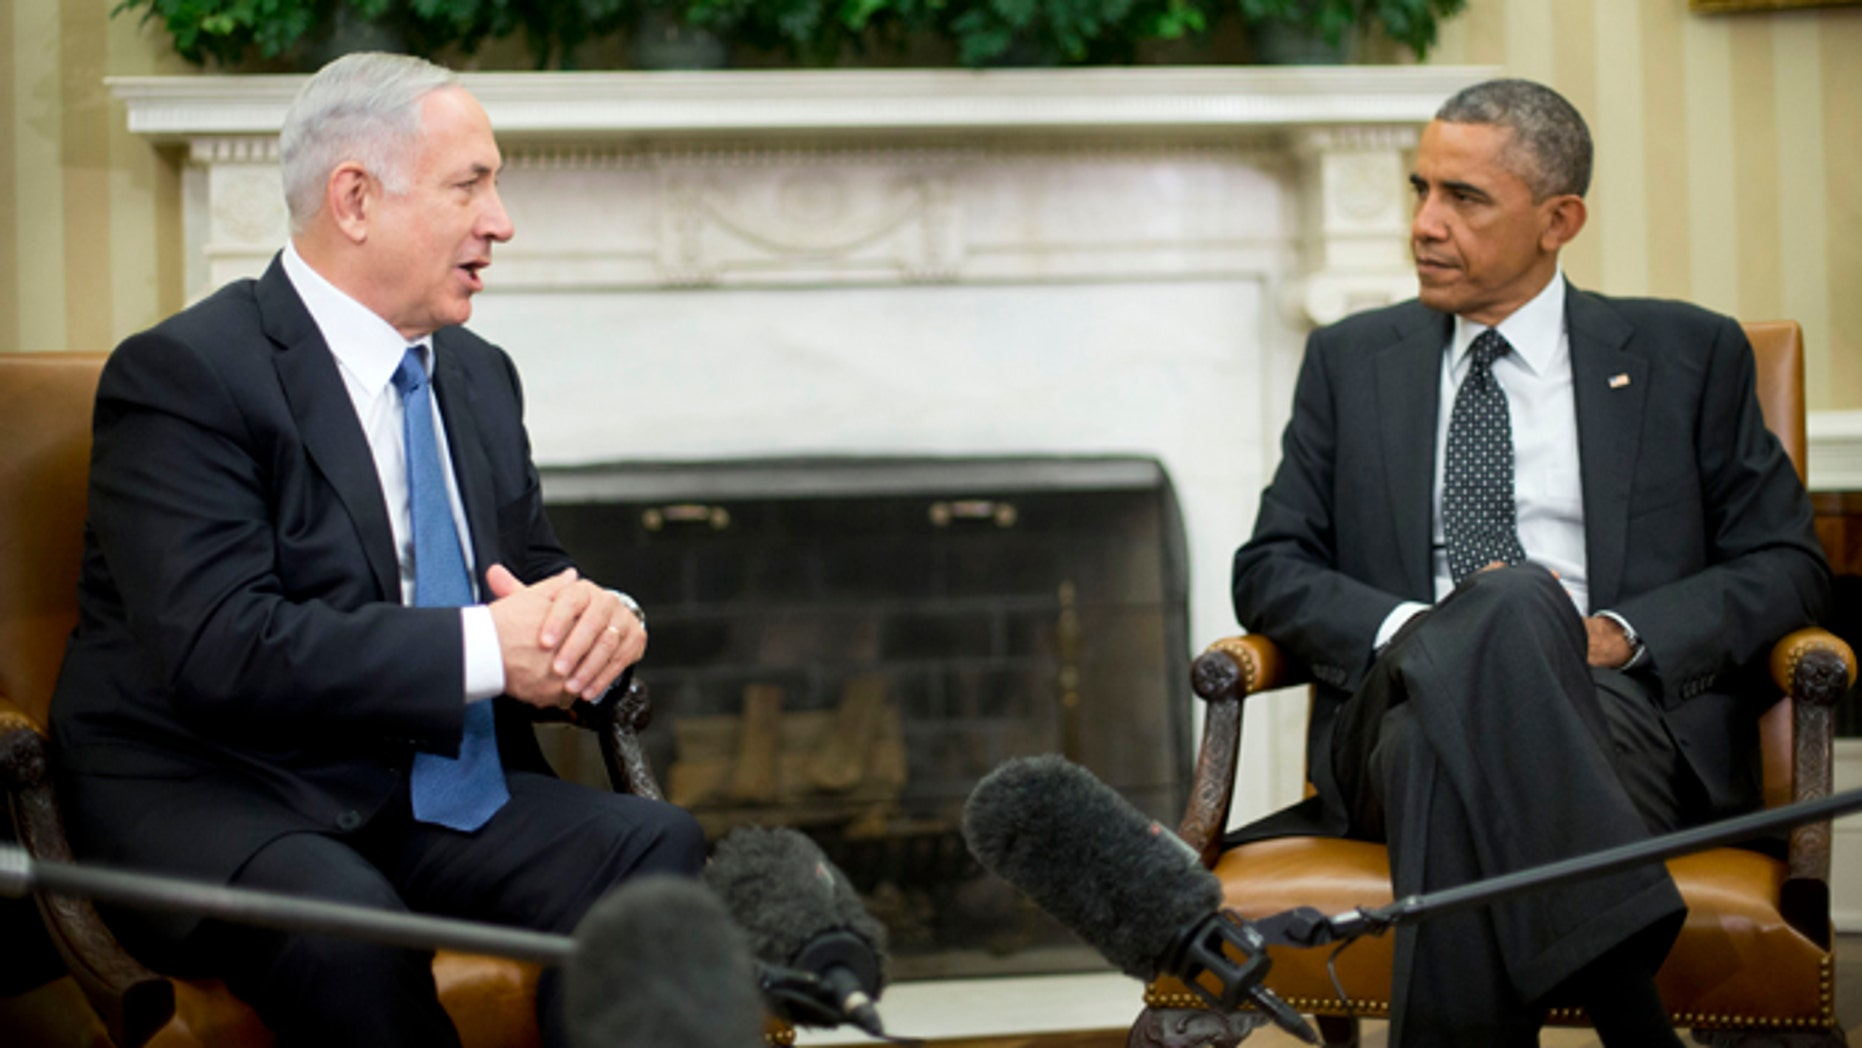 In this Oct. 1, 2014 file photo President Barack Obama meets with Israeli Prime Minister Benjamin Netanyahu in the Oval Office of the White House in Washington.